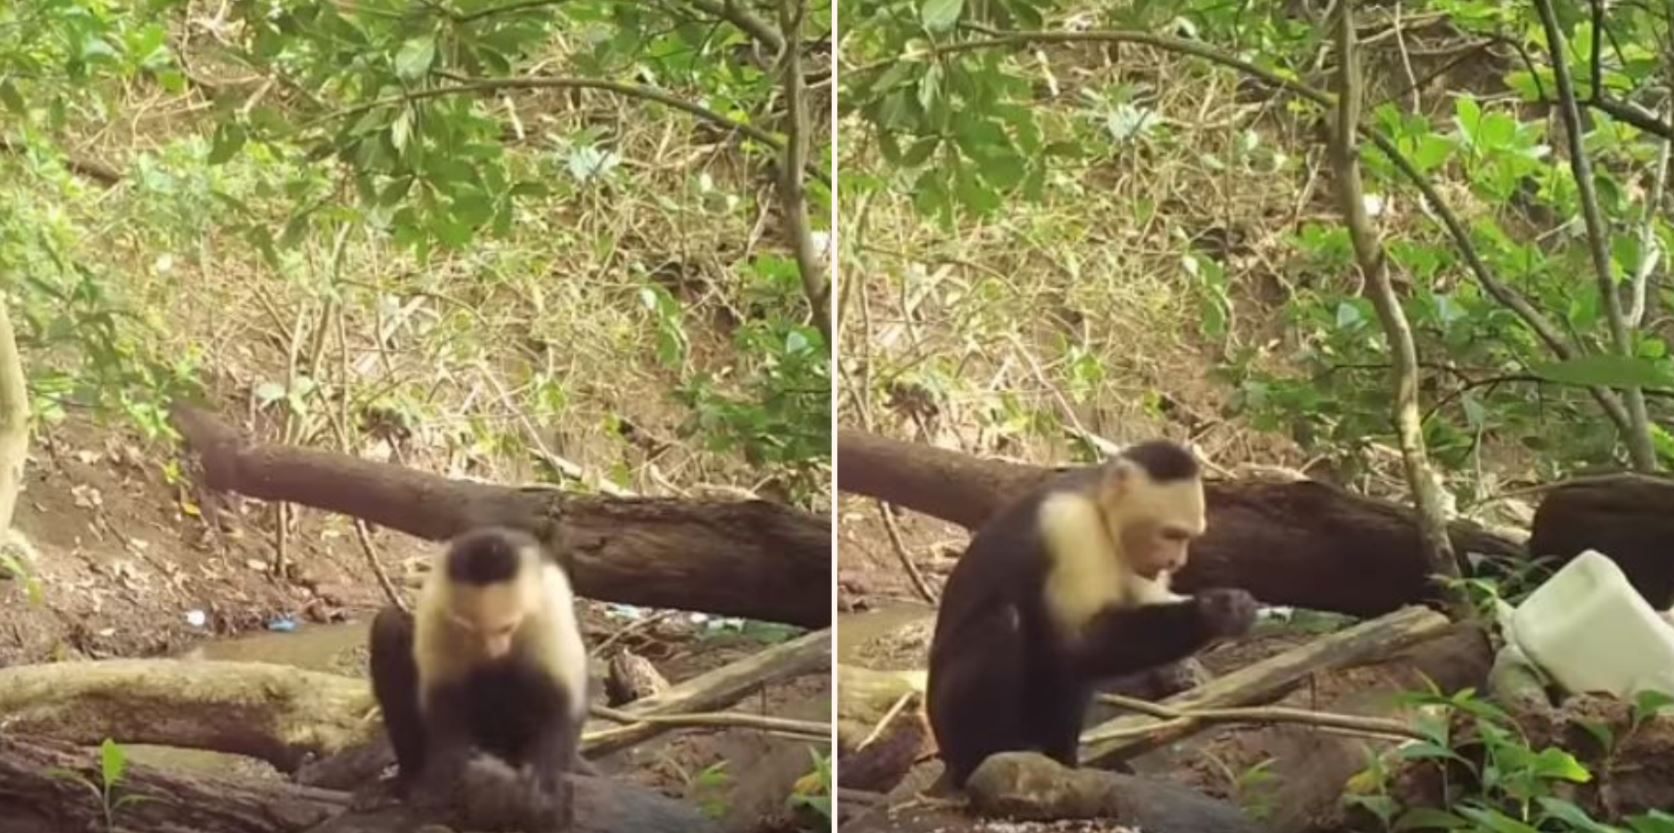 These monkeys from Panama have entered The Stone Age